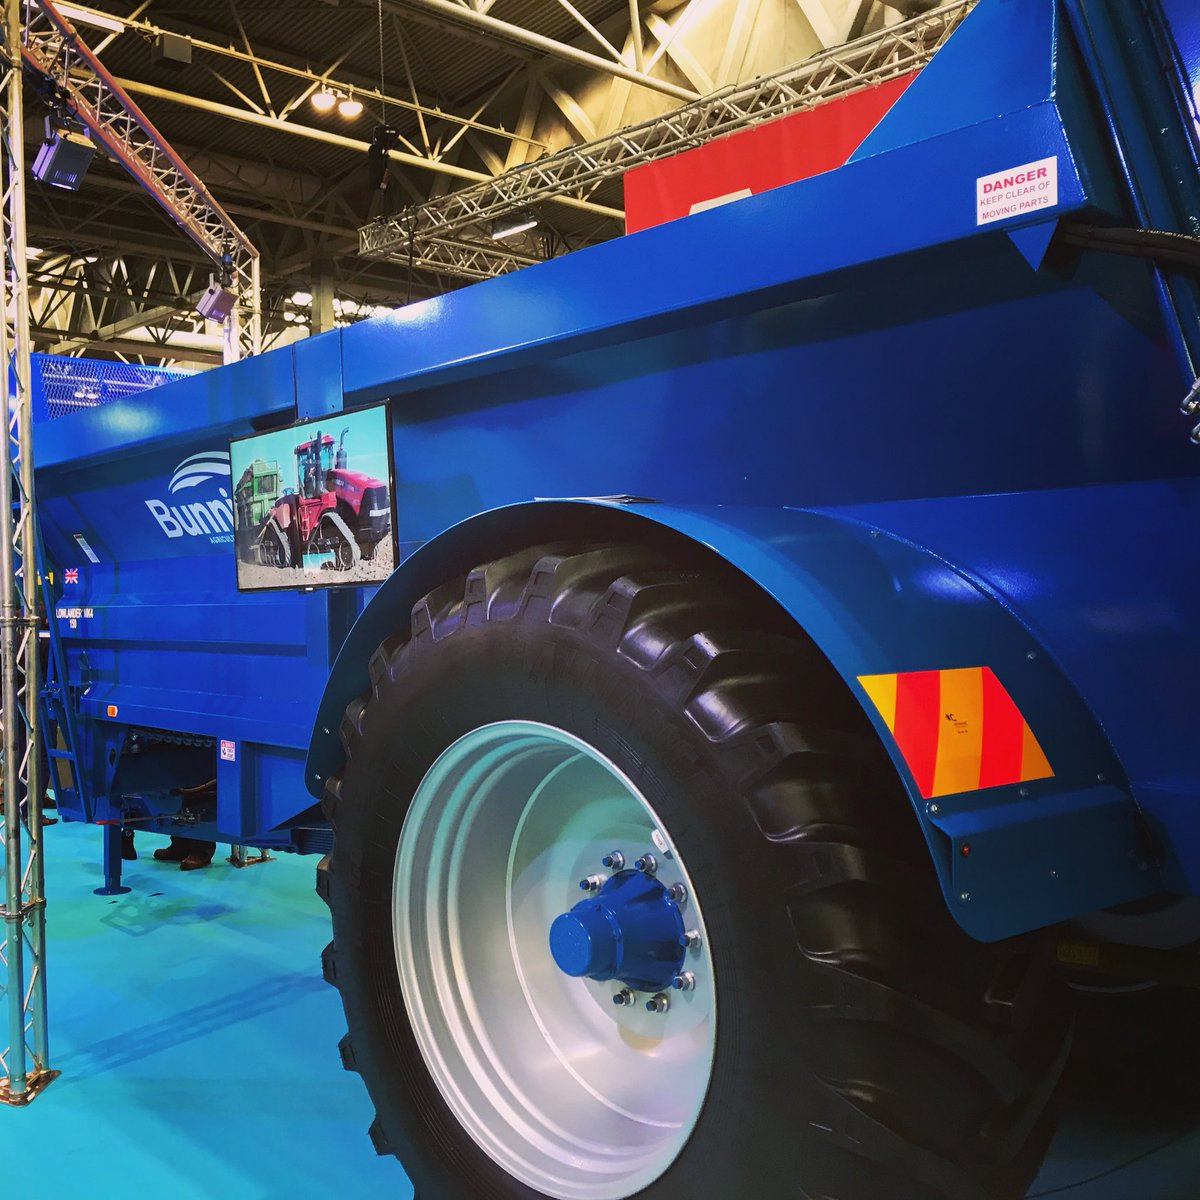 Spread the word... Fantastic spreaders at #LAMMA19 on the #Bunning stand.